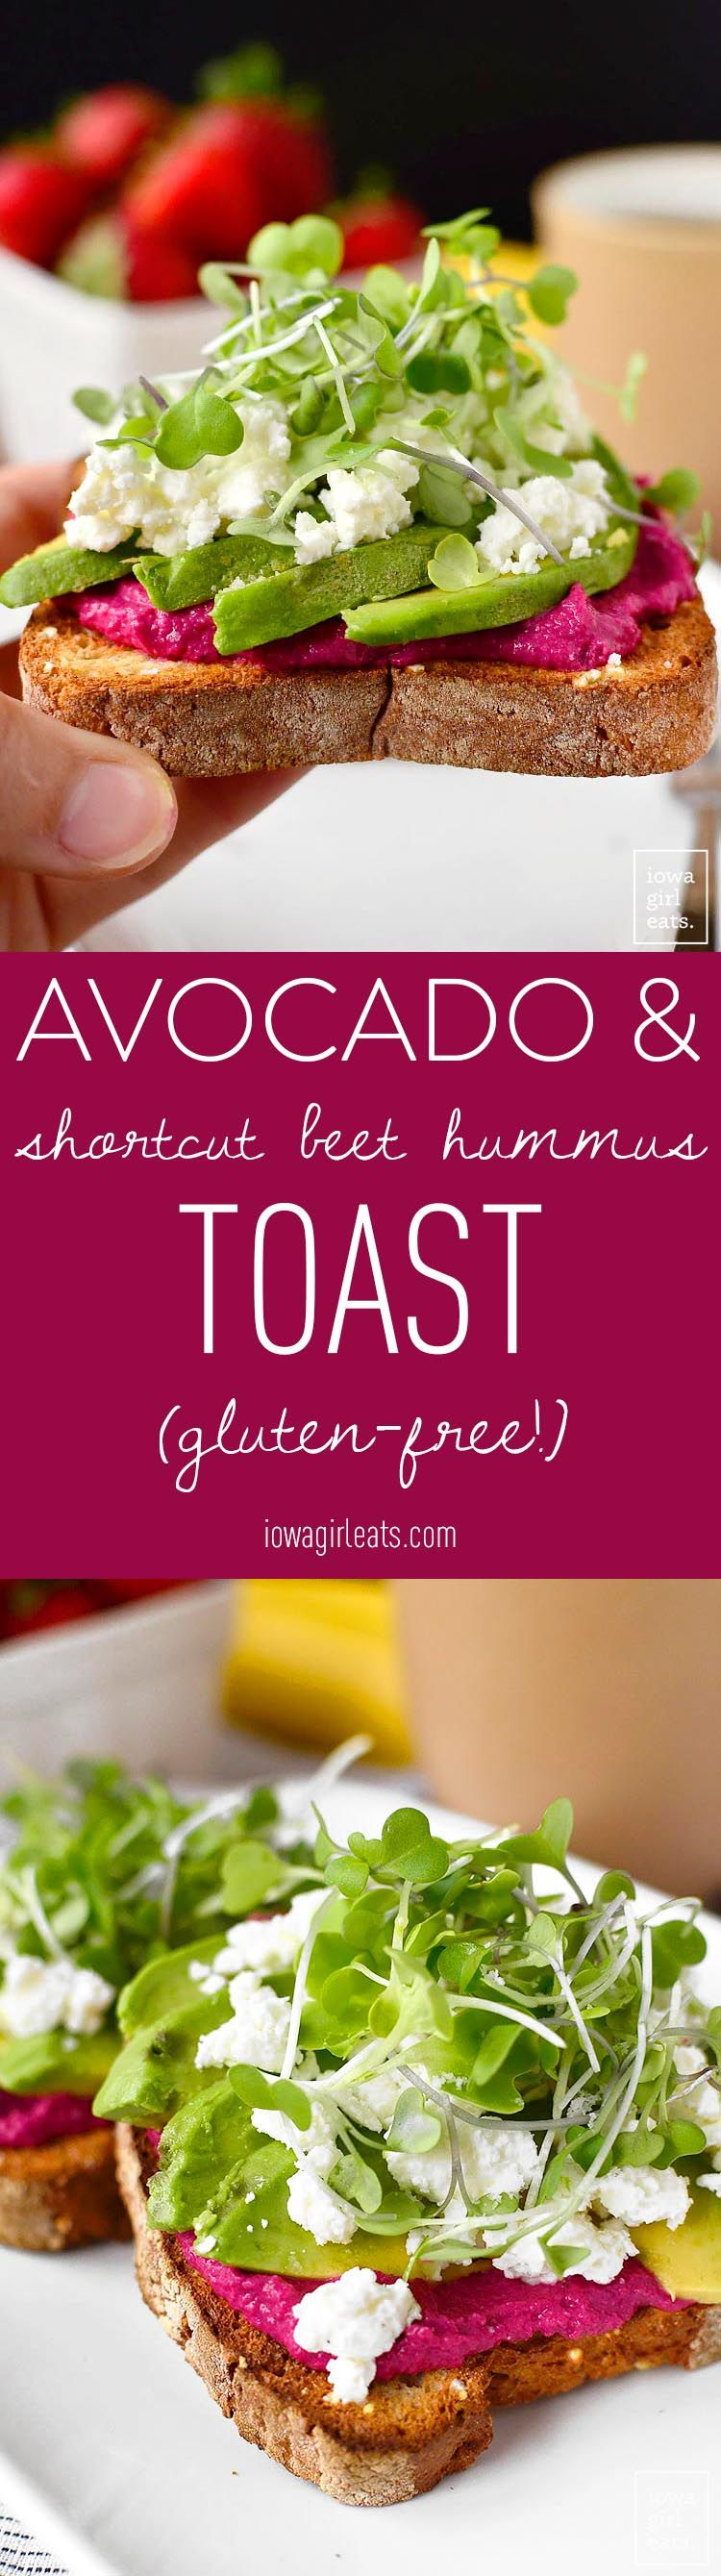 Avocado and Shortcut Beet Hummus Toast is a nutritional powerhouse! Eat for breakfast to power through your morning, or anytime you need a boost. Easily made gluten-free, too!   iowagirleats.com